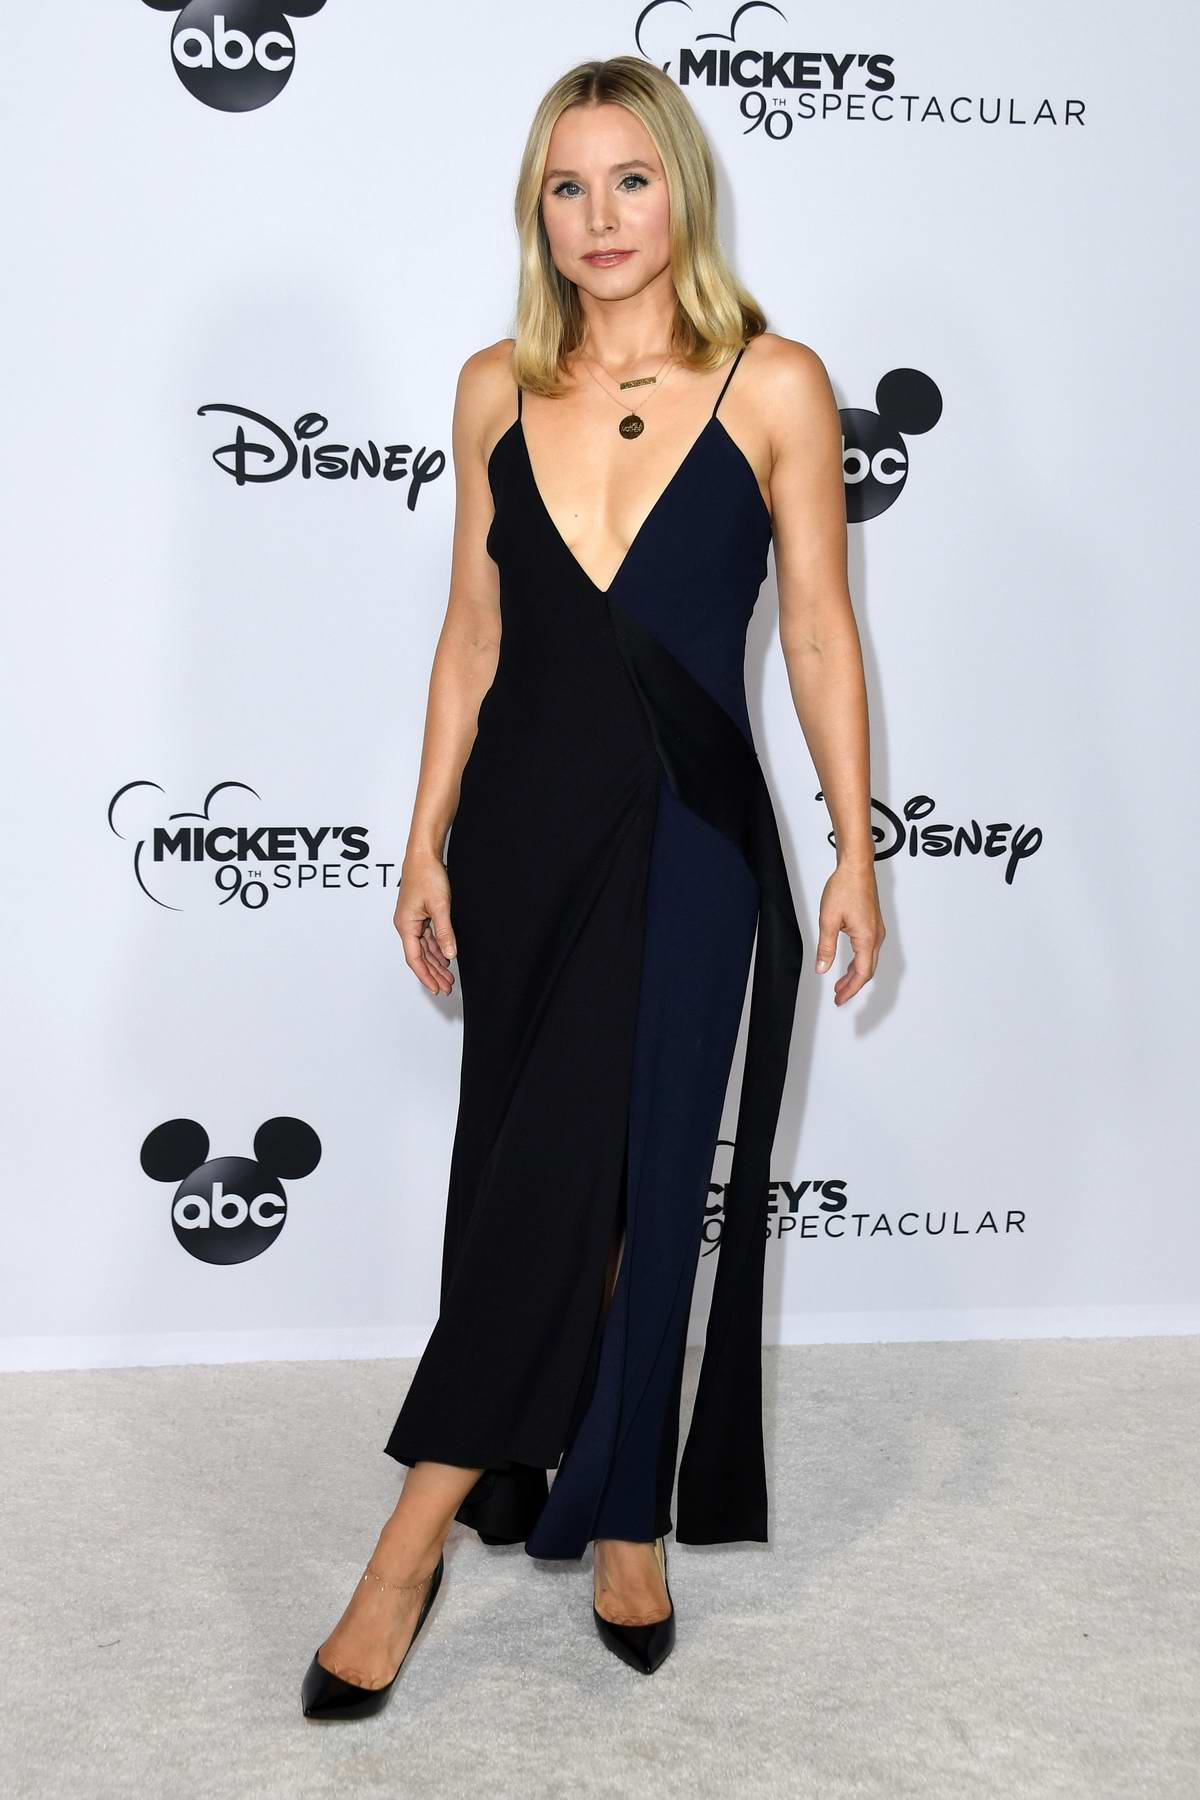 Kristen Bell attends Mickey's 90th Spectacular at Shrine Auditorium in Los Angeles